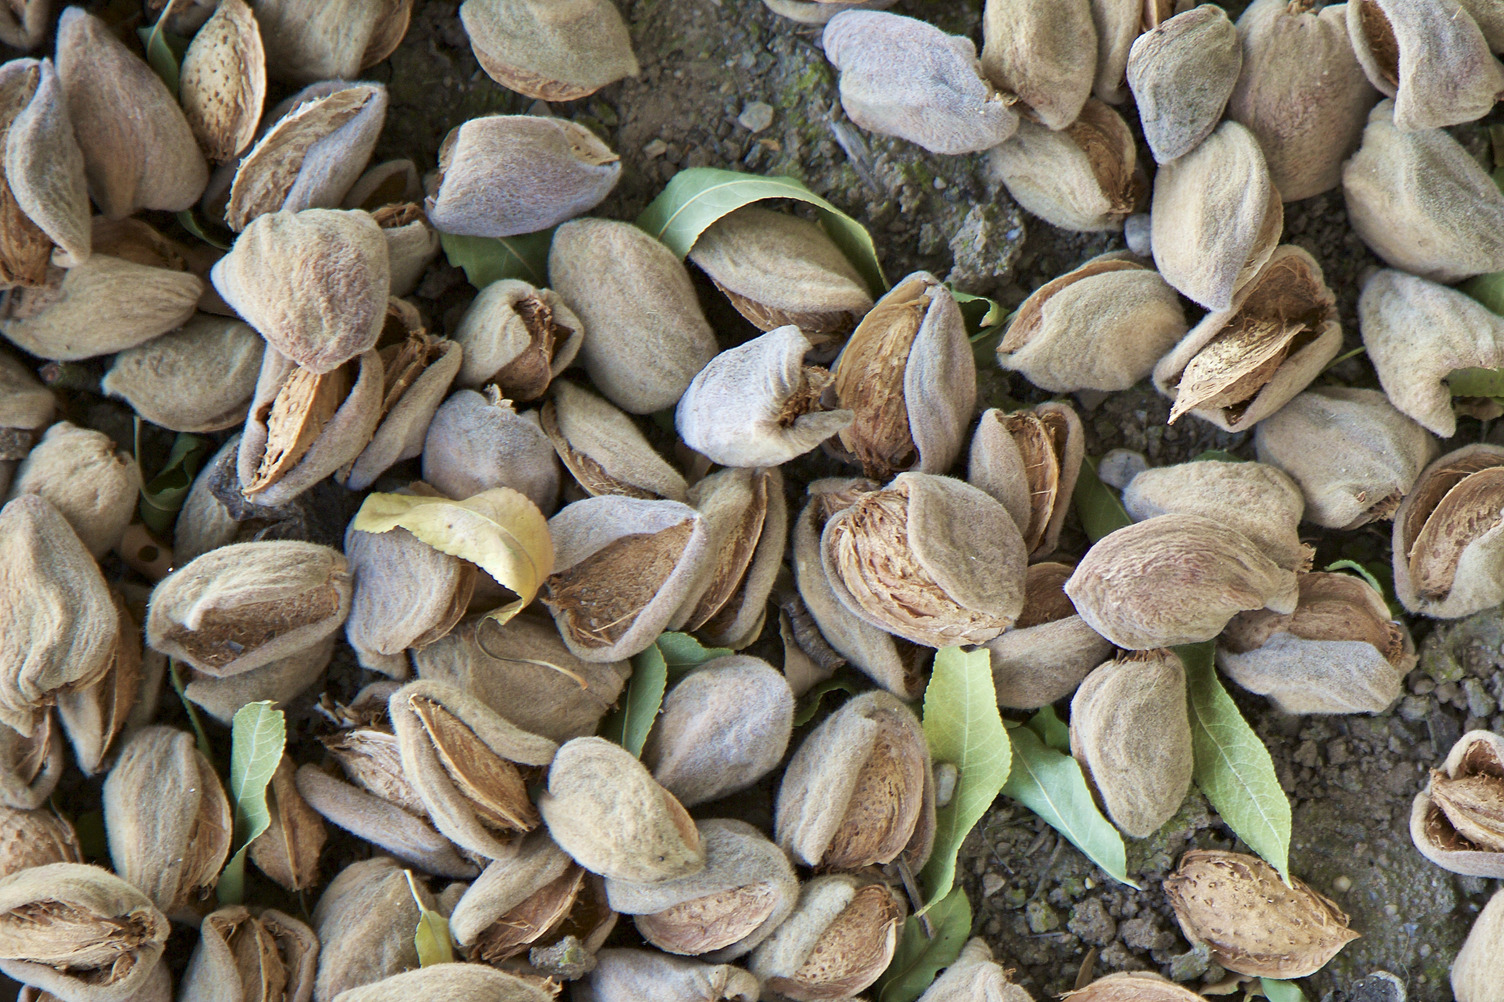 Almonds in shell on ground